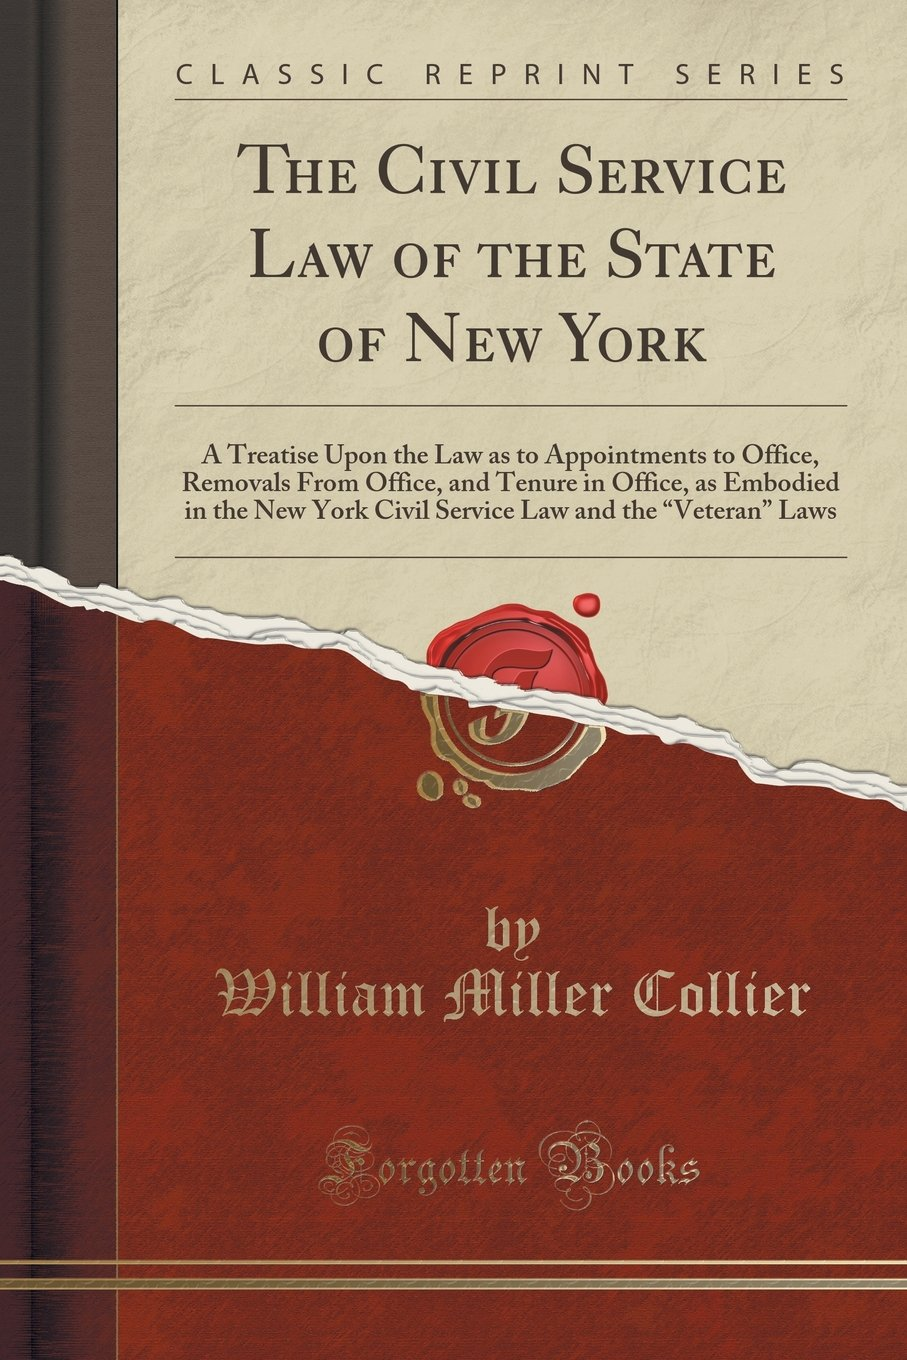 The Civil Service Law of the State of New York: A Treatise Upon the Law as  to Appointments to Office, Removals From Office, and Tenure in Office, as .